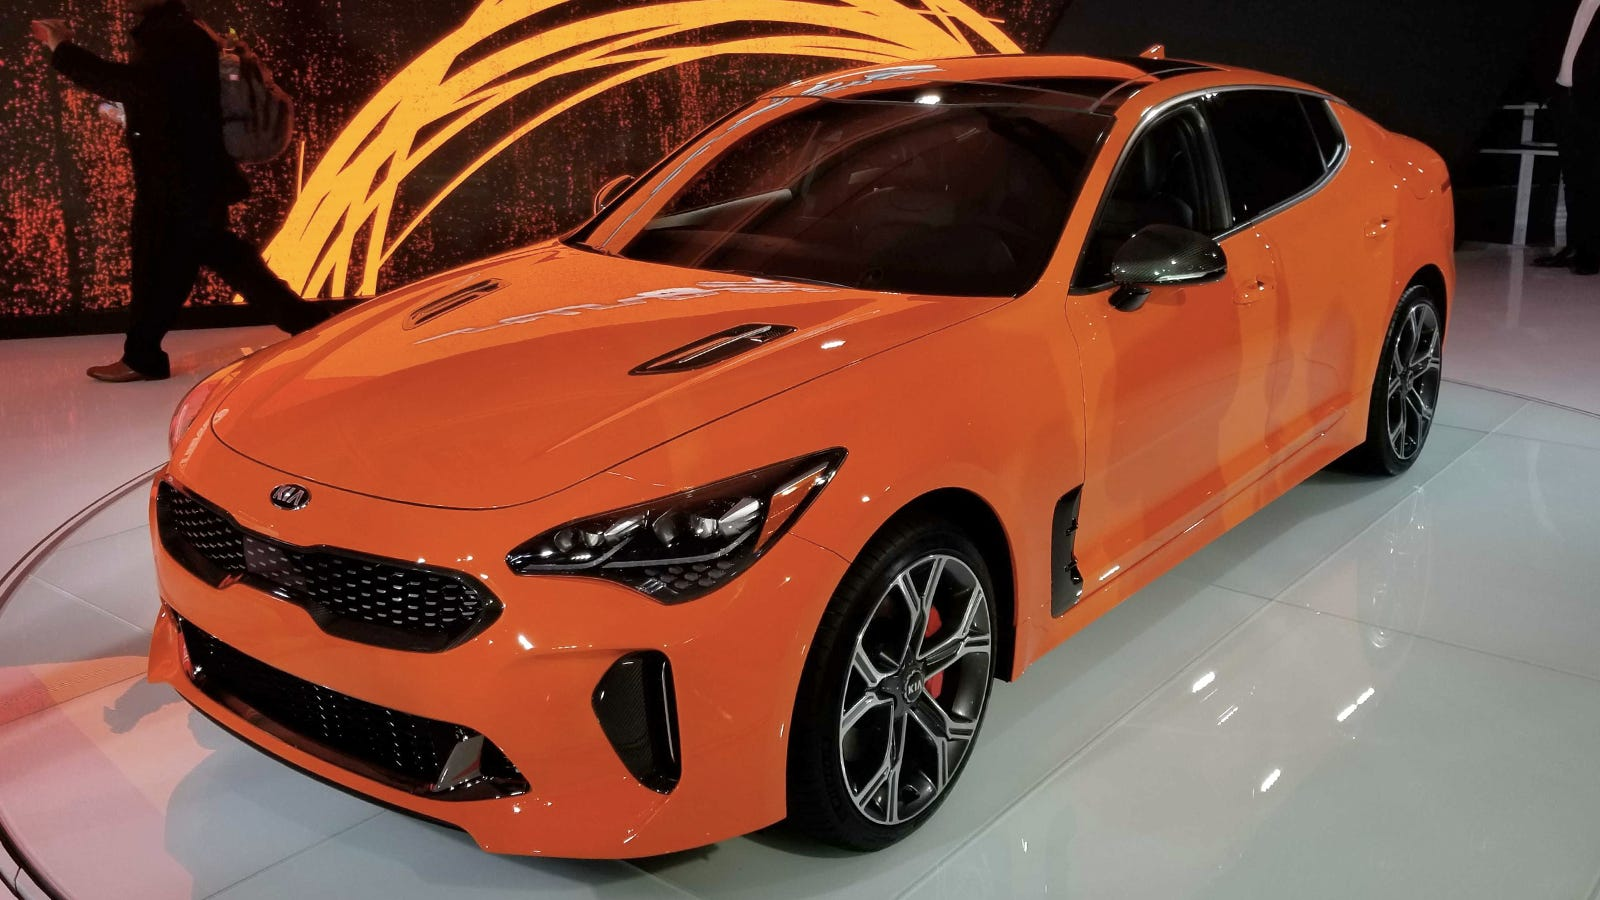 The 2019 Kia Stinger GTS Gets Drift Mode - Jalopnik